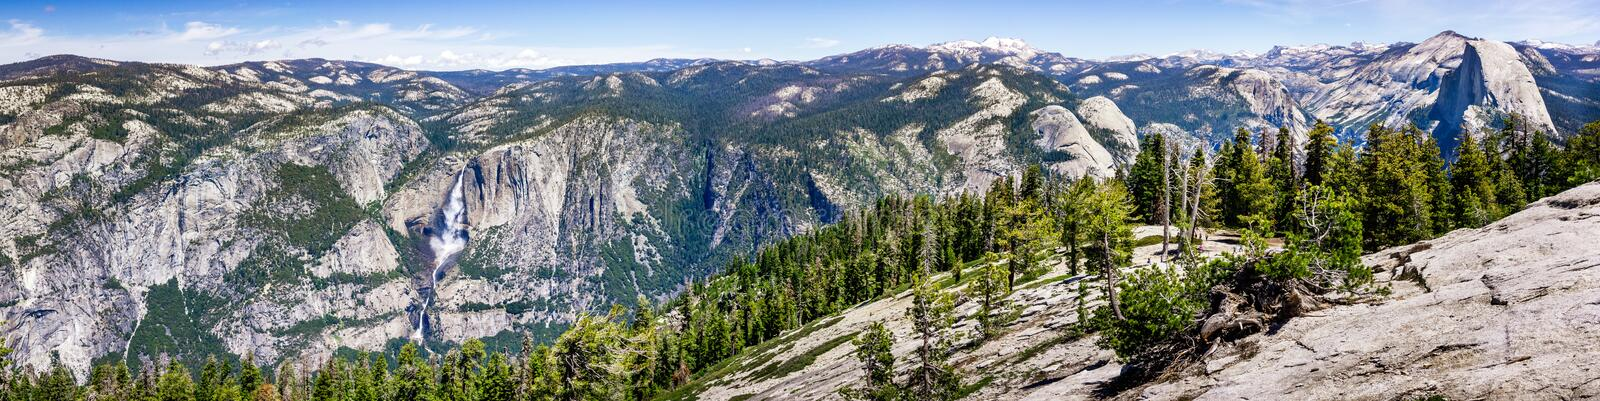 Panoramic view in Yosemite National Park with Yosemite falls on the right and Half Dome on the left; snow covered peaks visible in. The background; Sierra royalty free stock photography